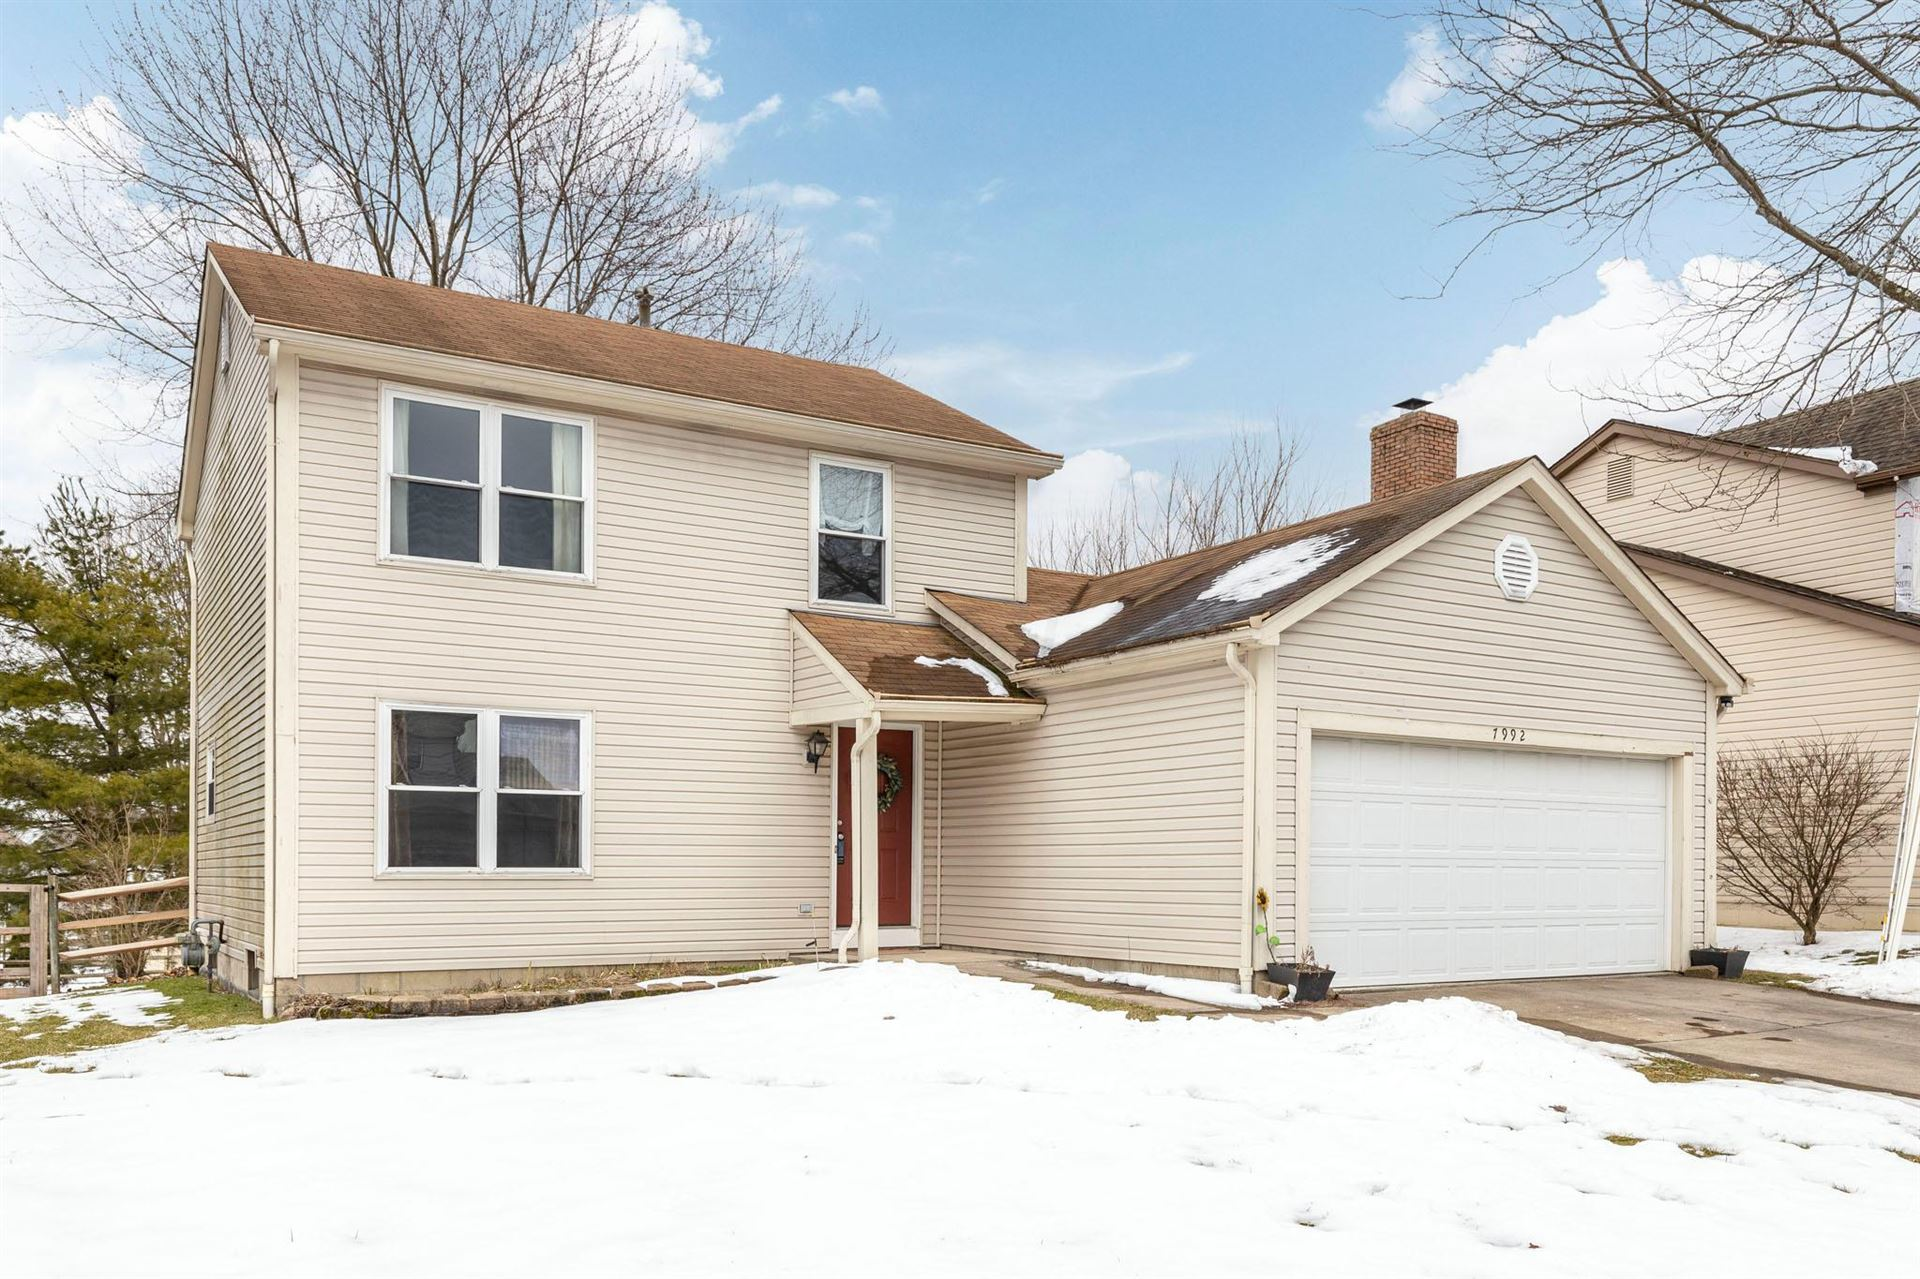 Photo of 7992 Schoolside Drive, Westerville, OH 43081 (MLS # 221005395)